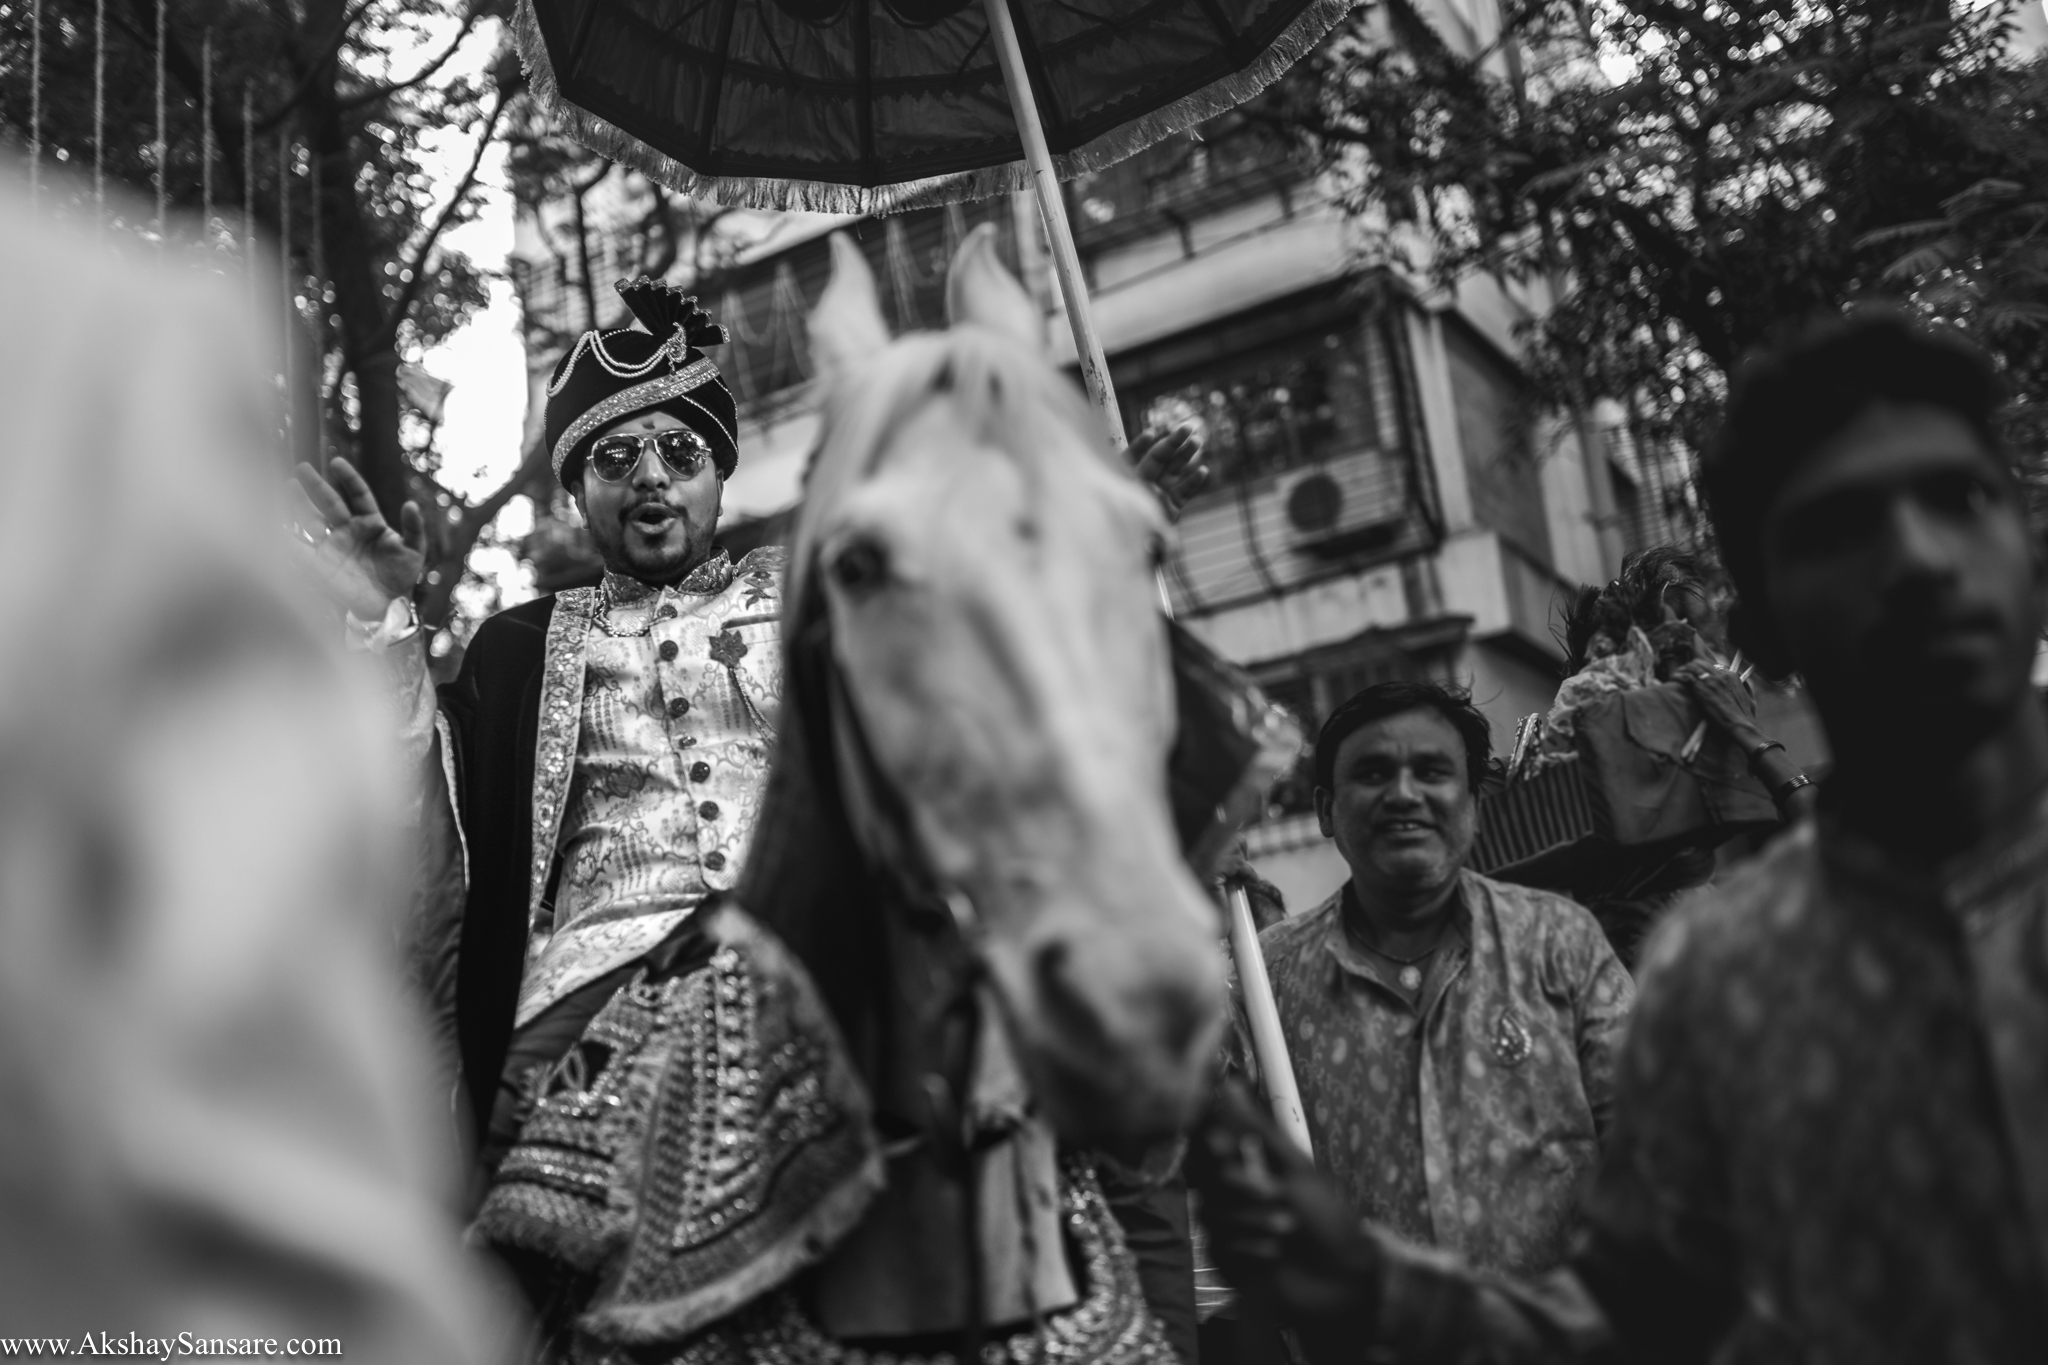 Nupur & Rohan wedding Akshay Sansare Photography best wedding photographer in mumbai India Candid(35).jpg